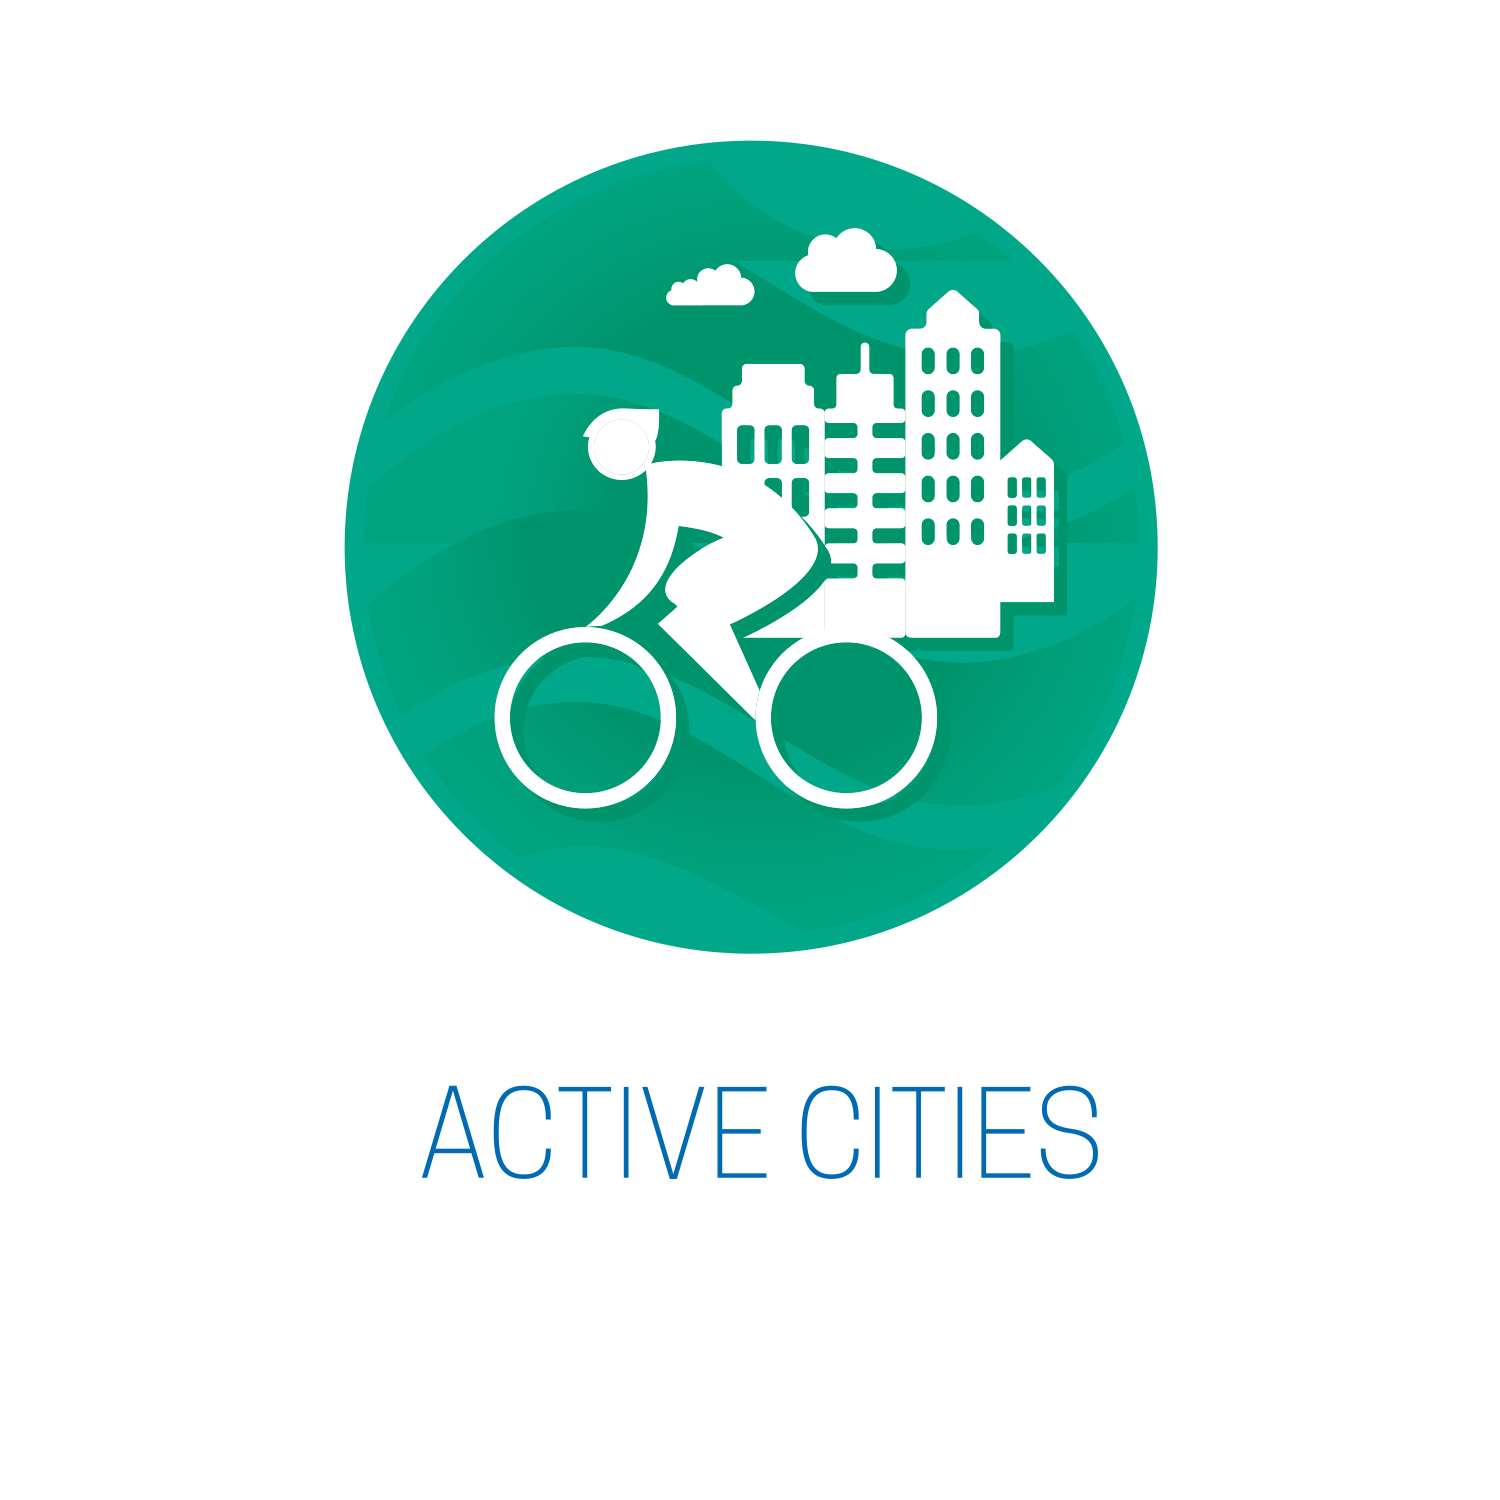 active cities